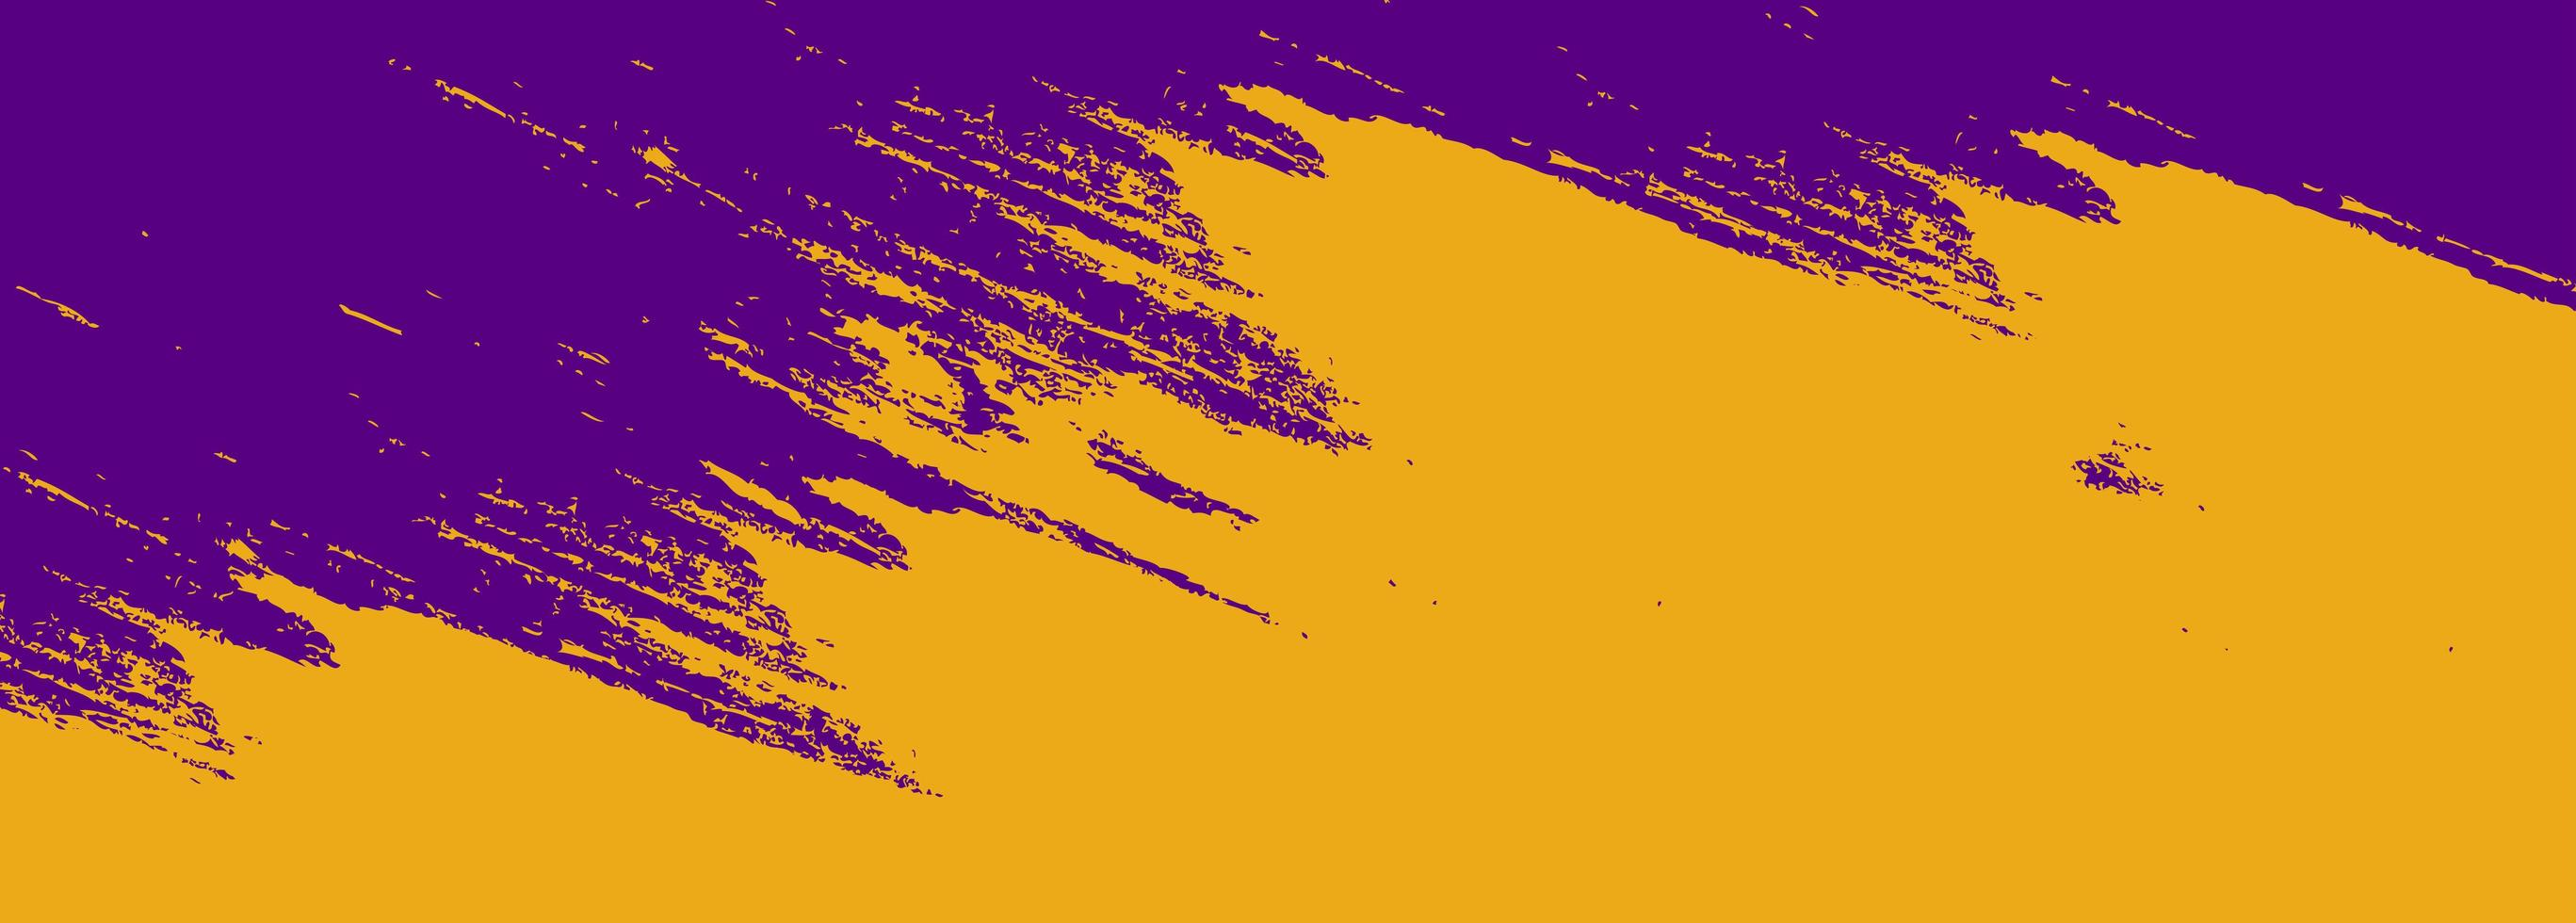 Abstract orange yellow and purple brush watercolor banner vector